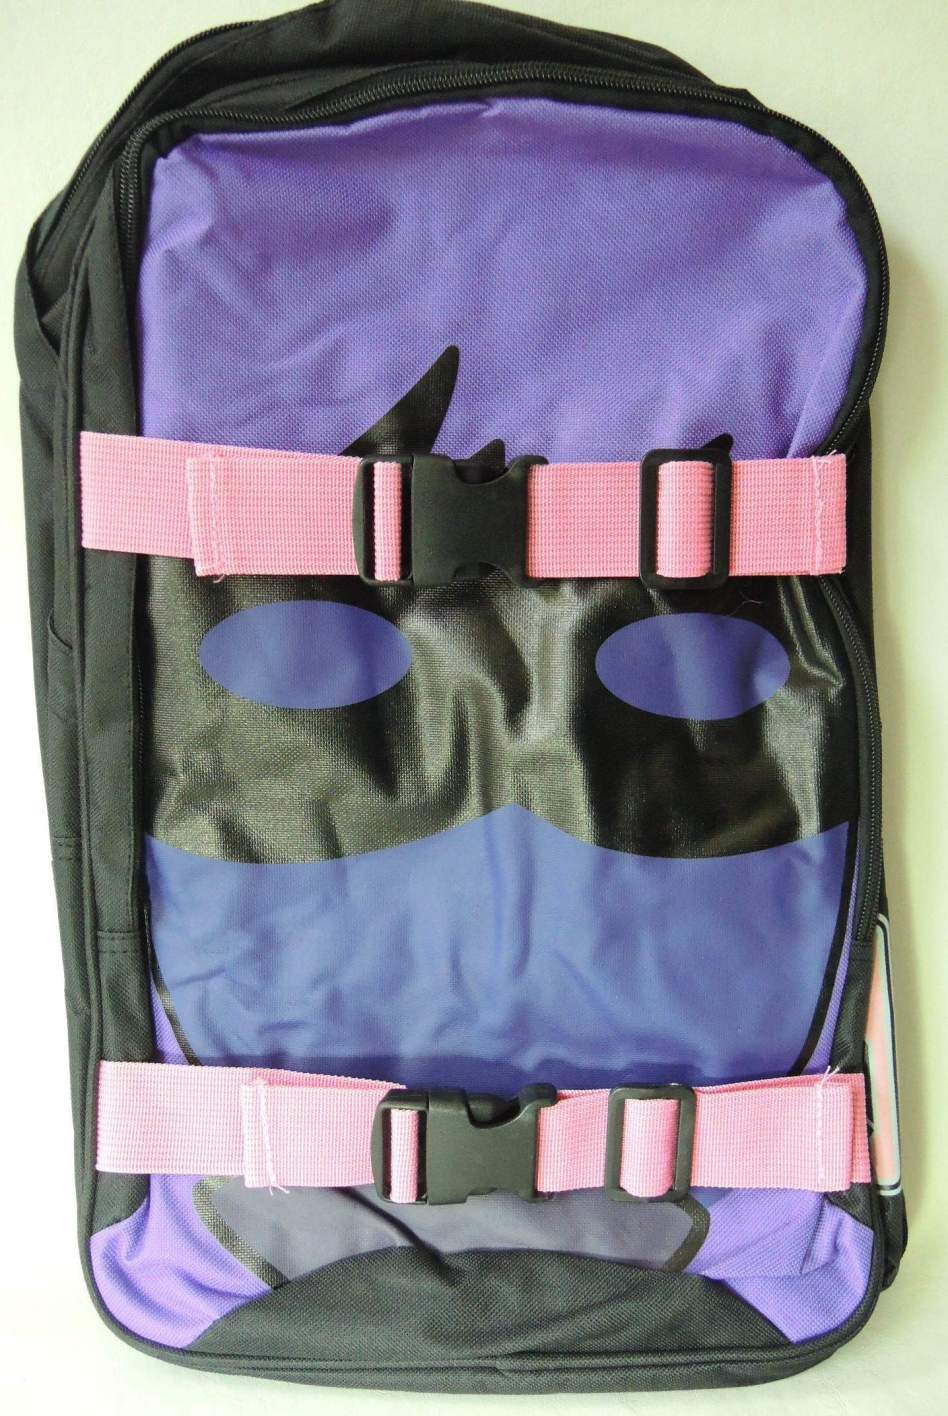 NECA Kick-Ass Hit Girl Double Buckle Backpack NECA, Kick-Ass, Cosplay, 2013|Color~black|Color~yellow, action, movie